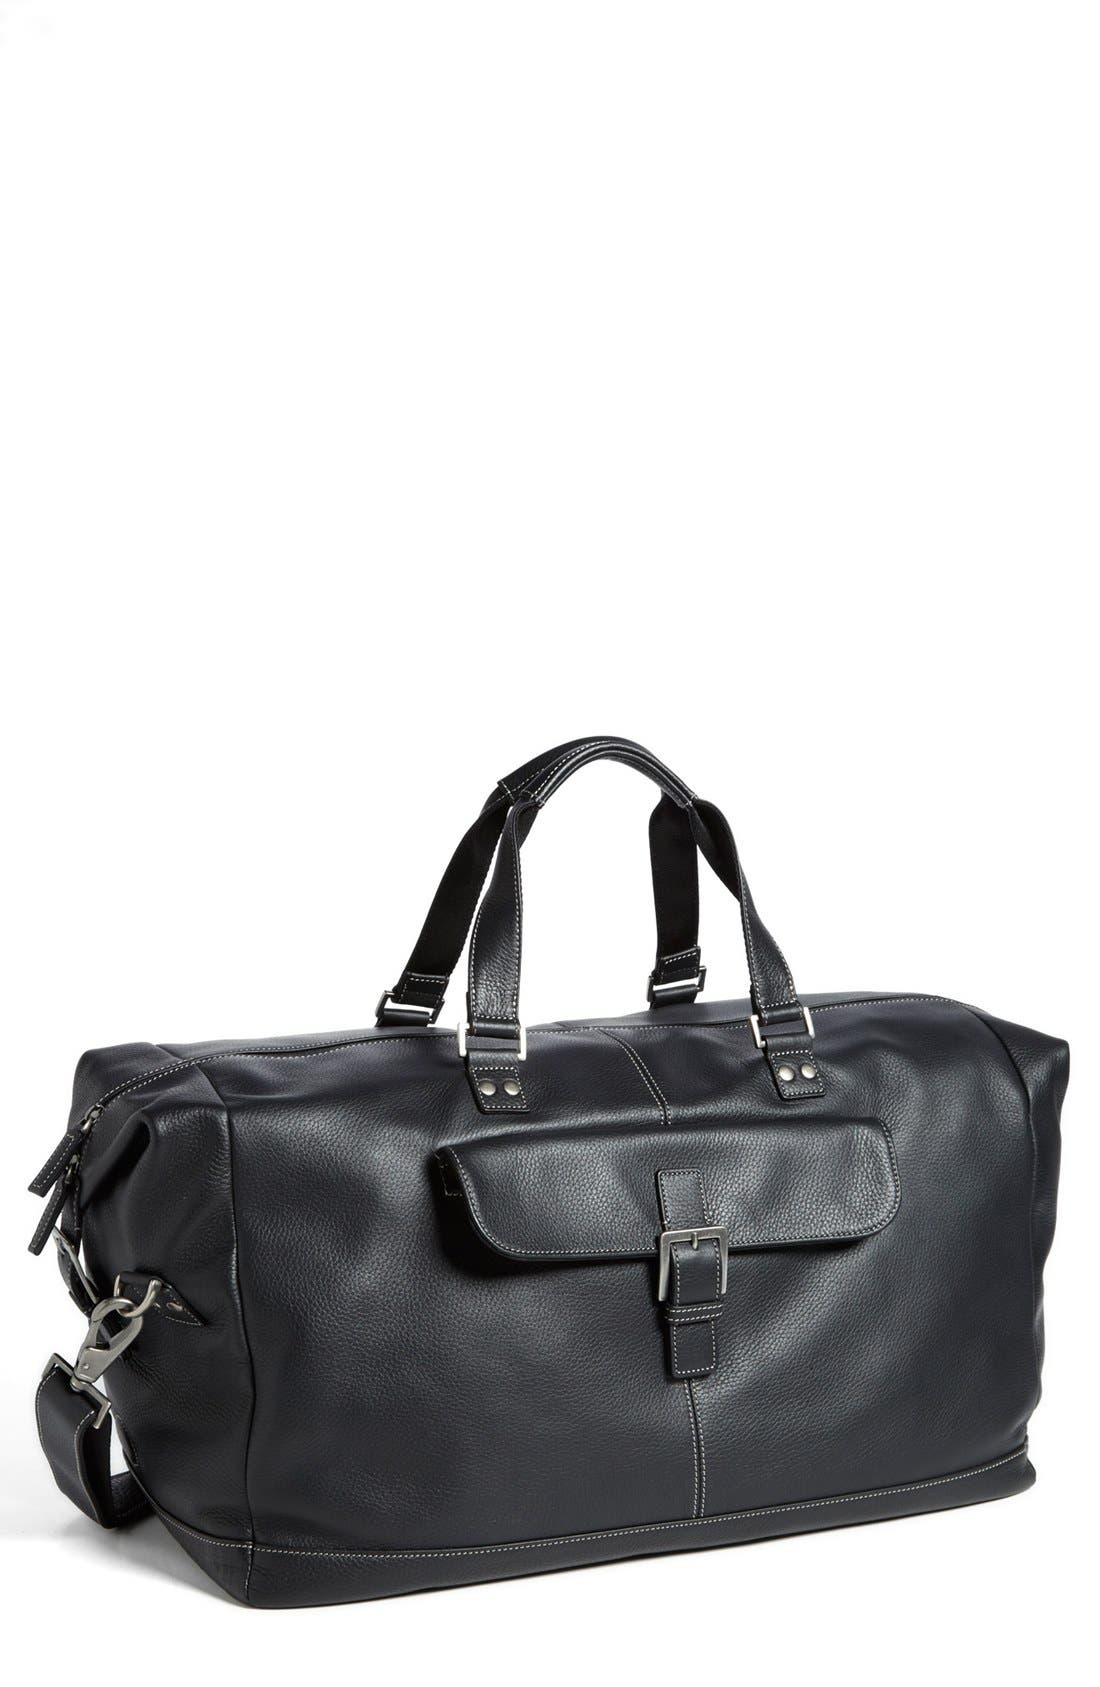 BOCONI Tyler Leather Cargo Duffle Bag, Main, color, BLACK/ KHAKI